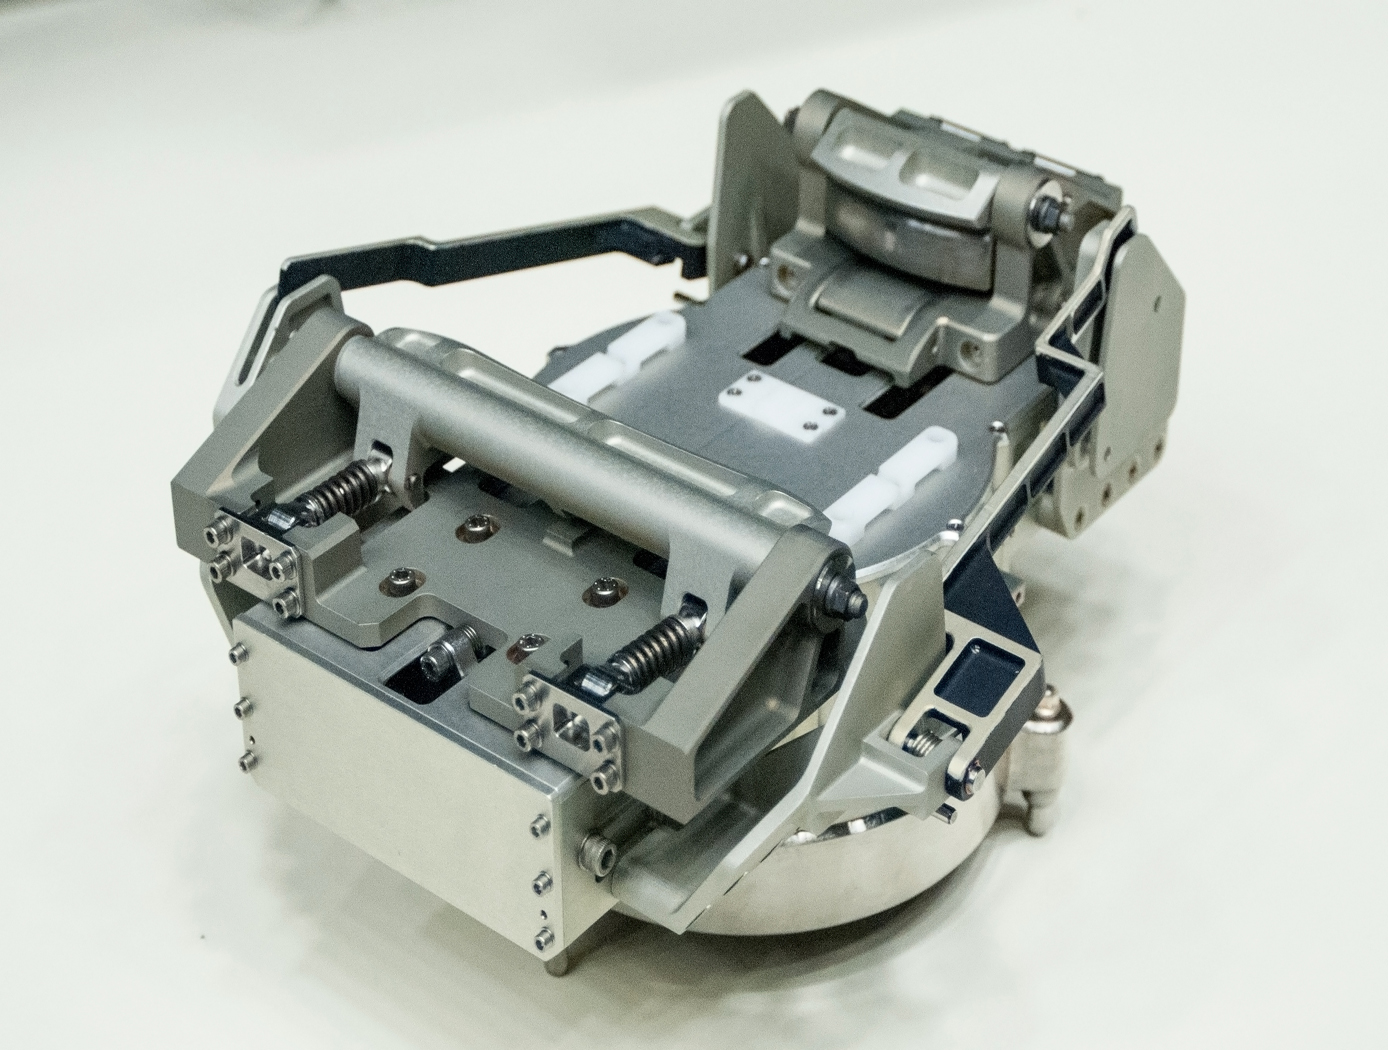 Robotic gripper for satellite capture and servicing